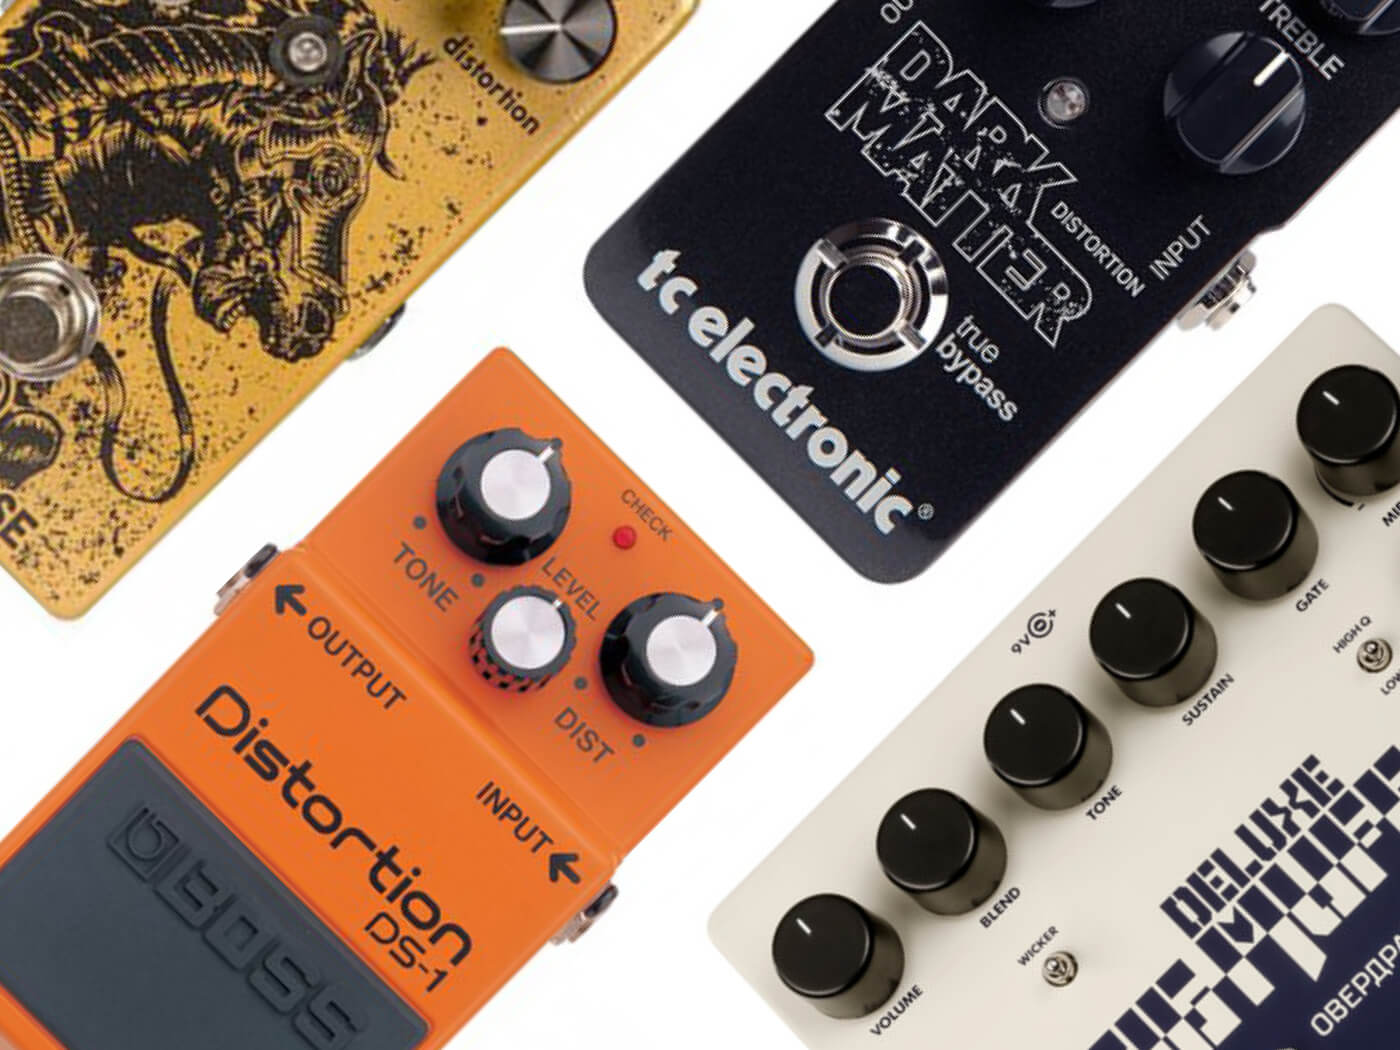 10 best distortion pedals for guitarists - Guitar com | All